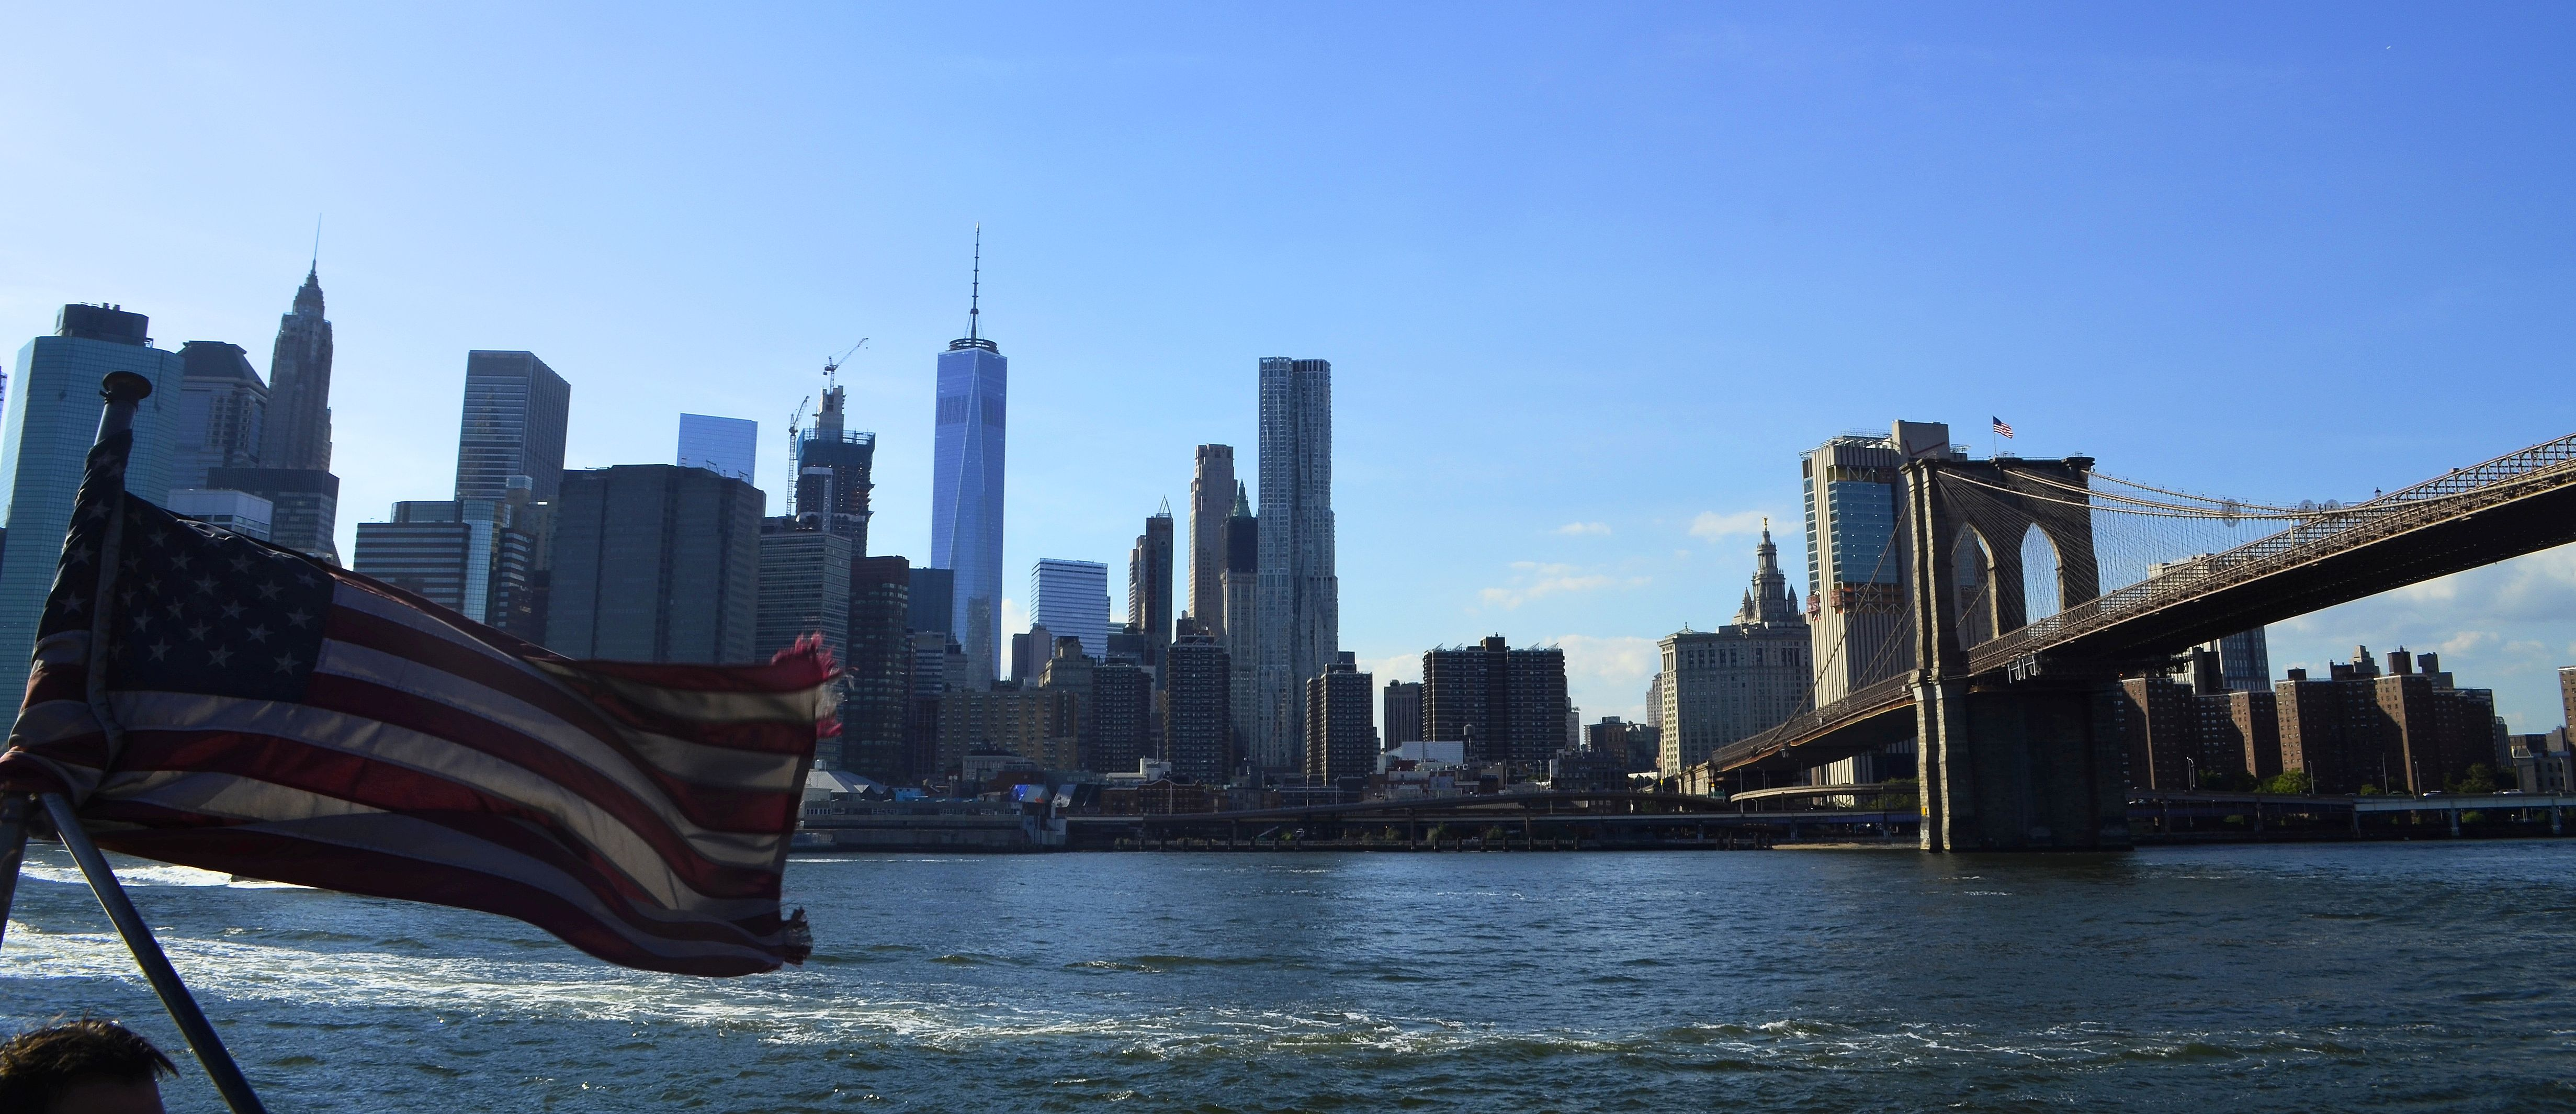 new-yoek-skyline-brooklyn-bridge-flag